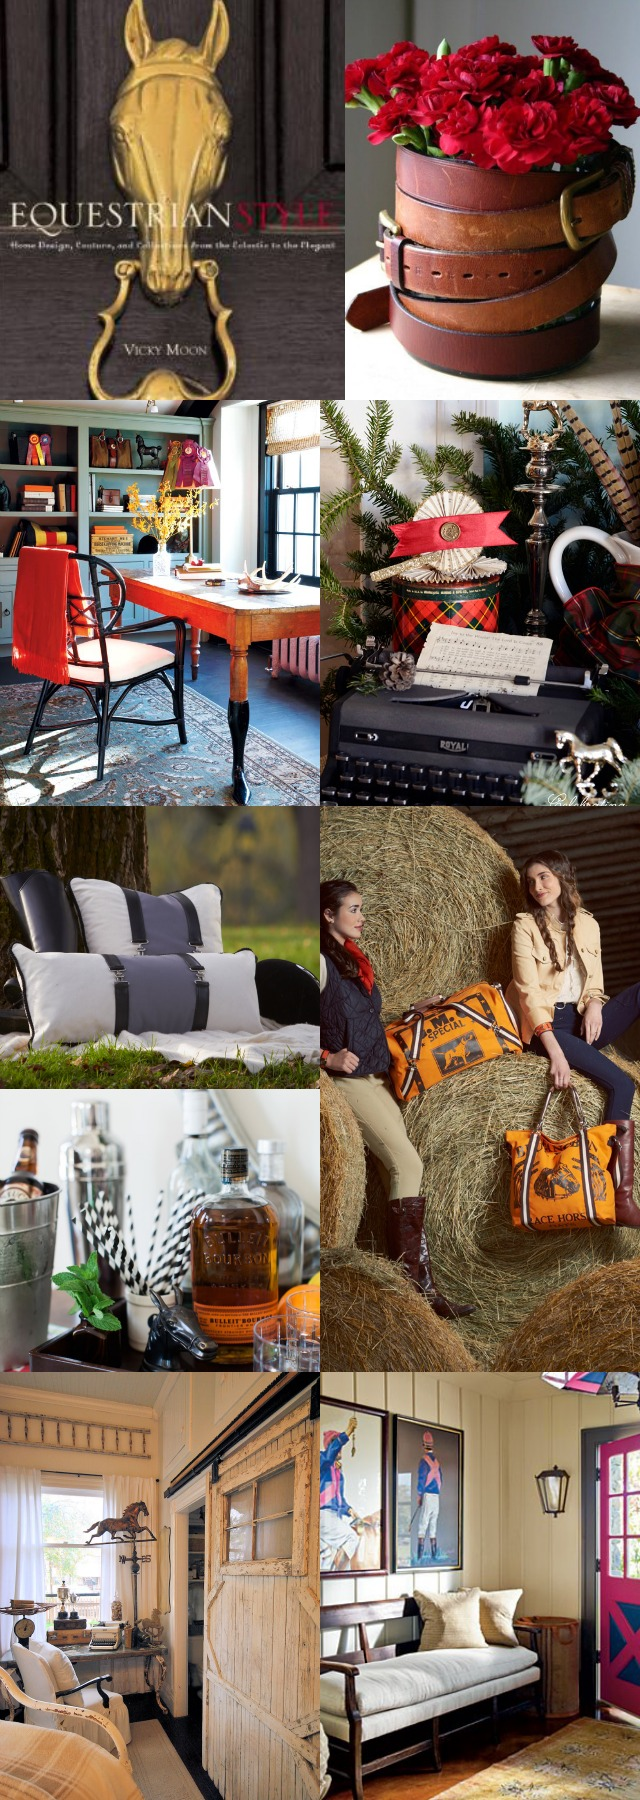 Equestrian Style Decorating & Fashion Inspiration